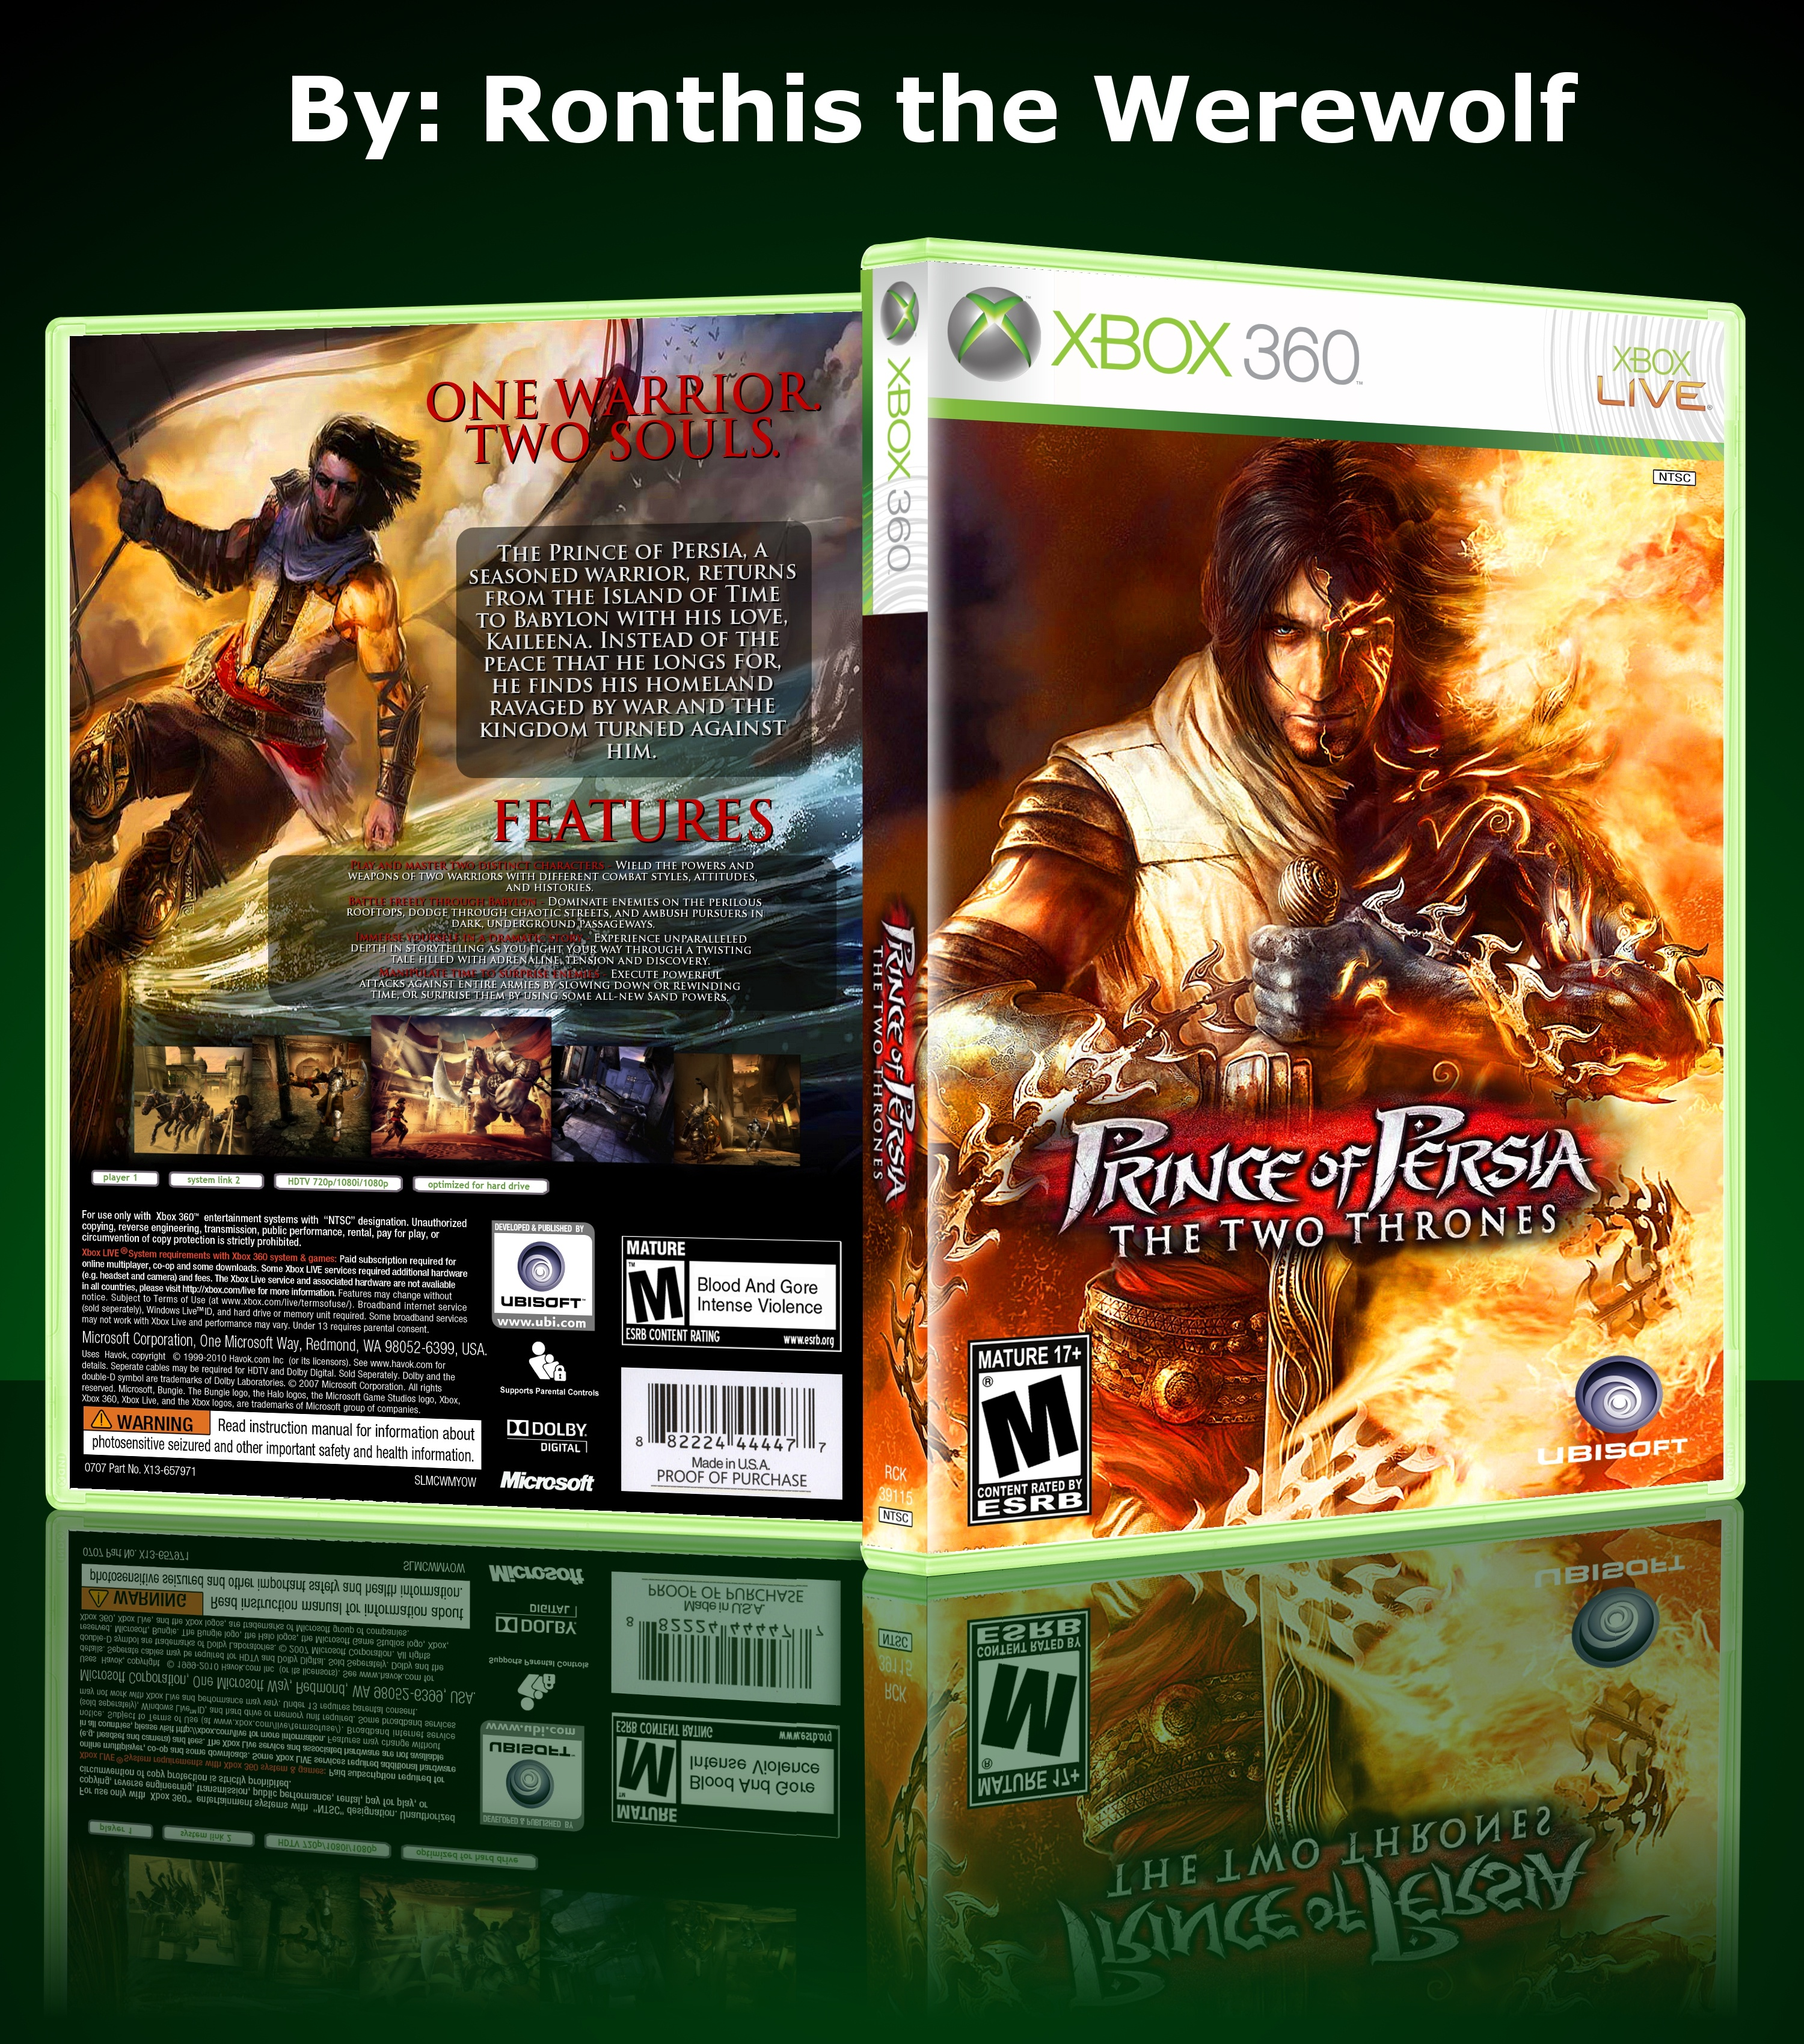 Prince of Persia: The Two Thrones box cover